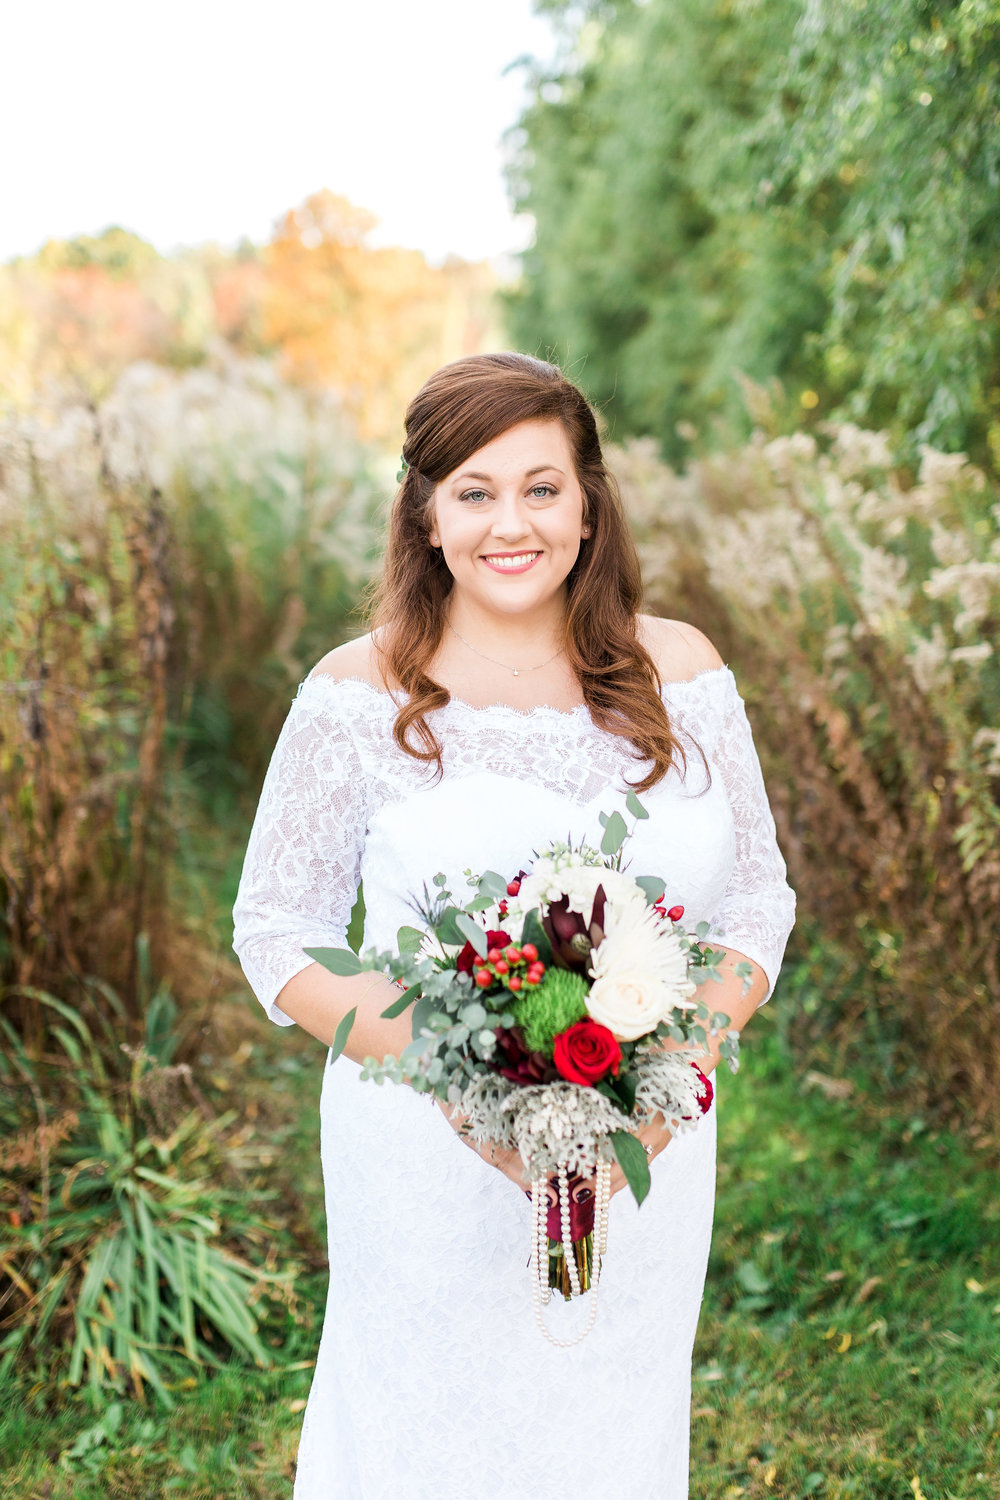 An open letter to the bride without her mom on her wedding day lytle photo co lehigh valley wedding photographer (4).jpg